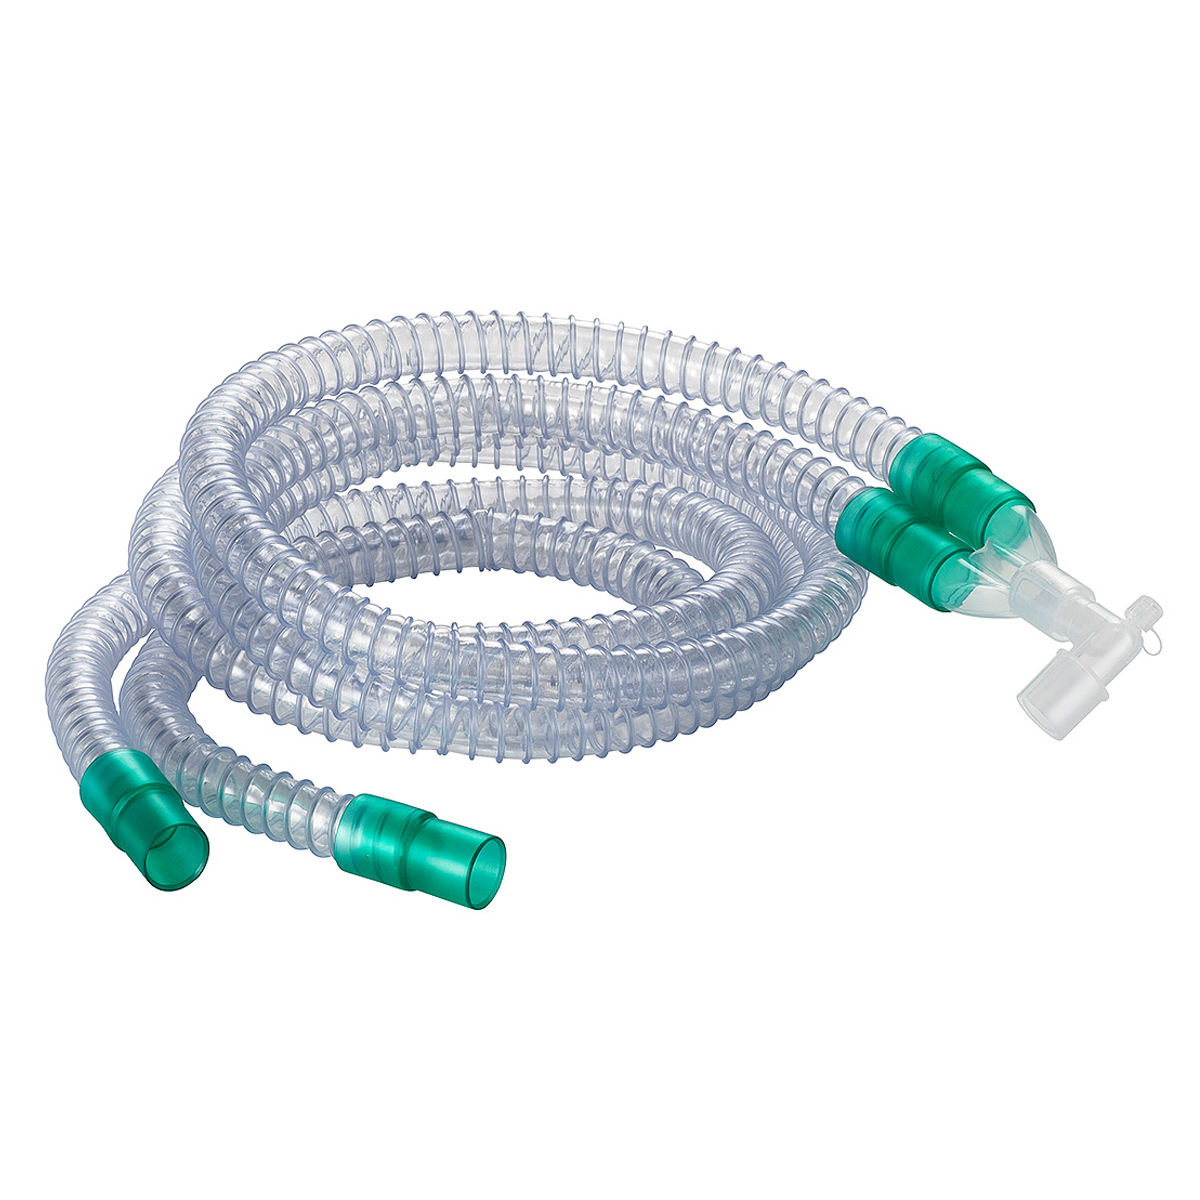 Disposable Anesthesia Breathing Circuit Reinforced PVC